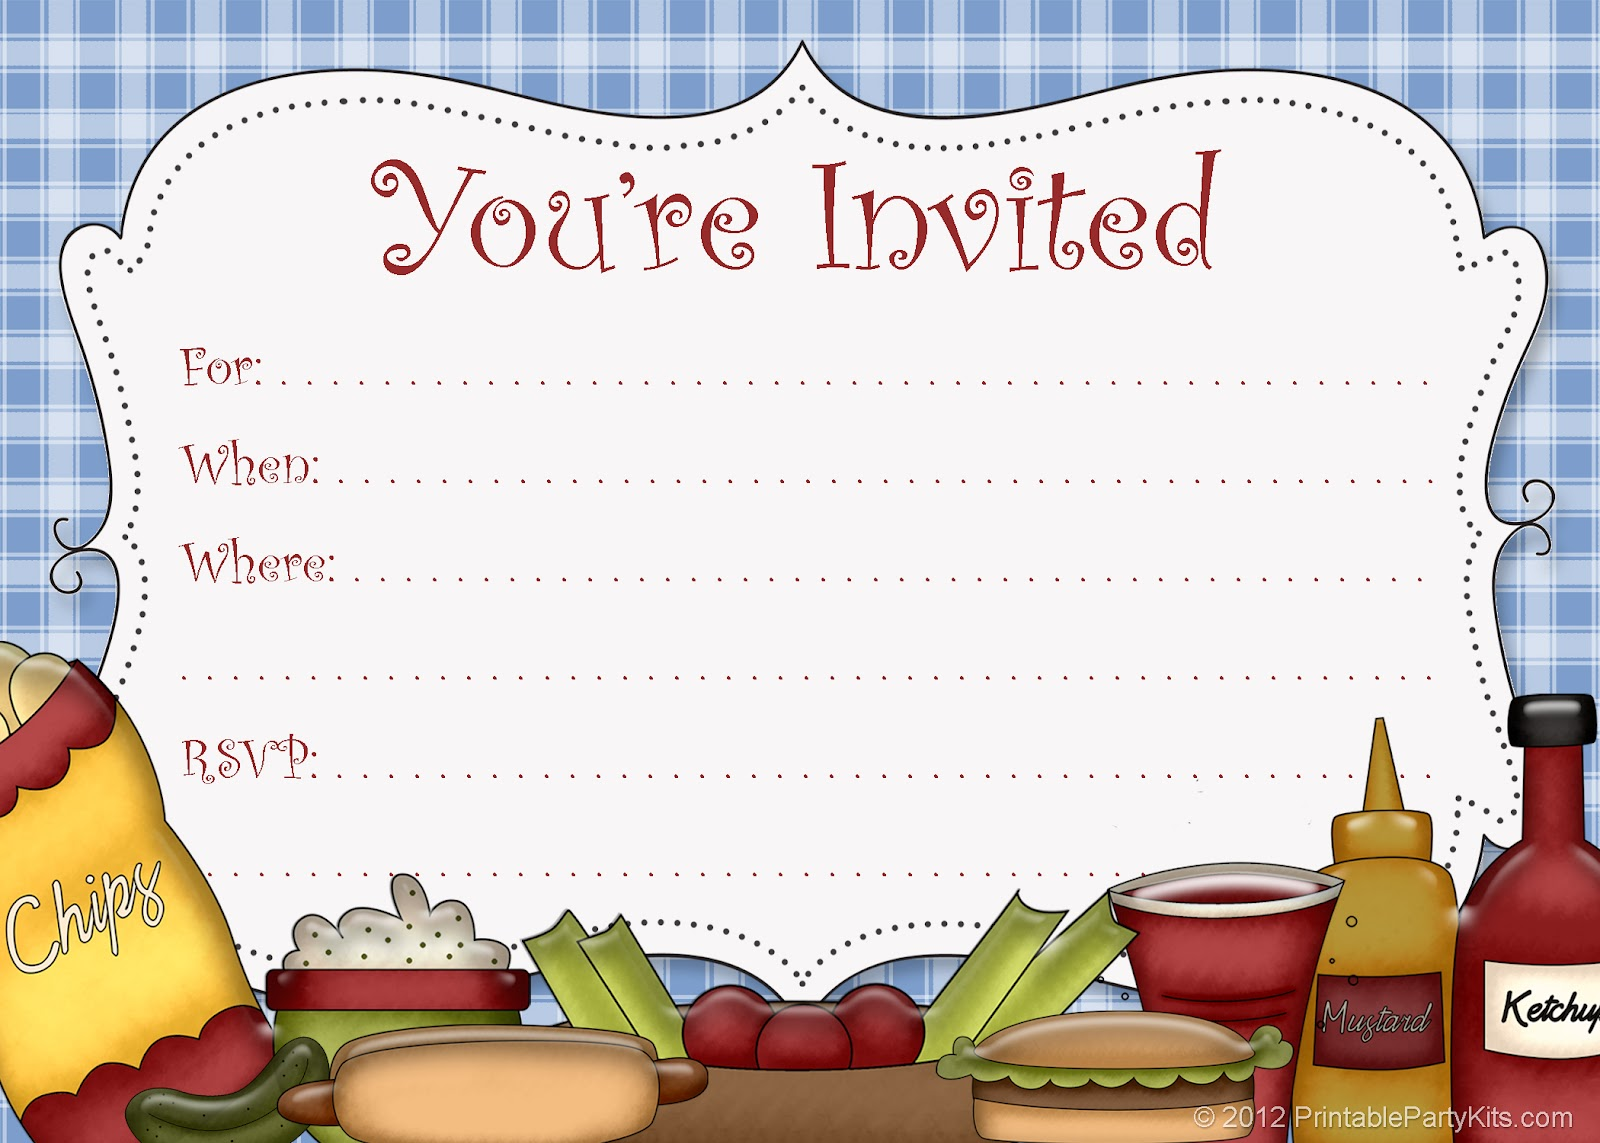 Fun clipart invited Party Party Picnic Printable Invitations: